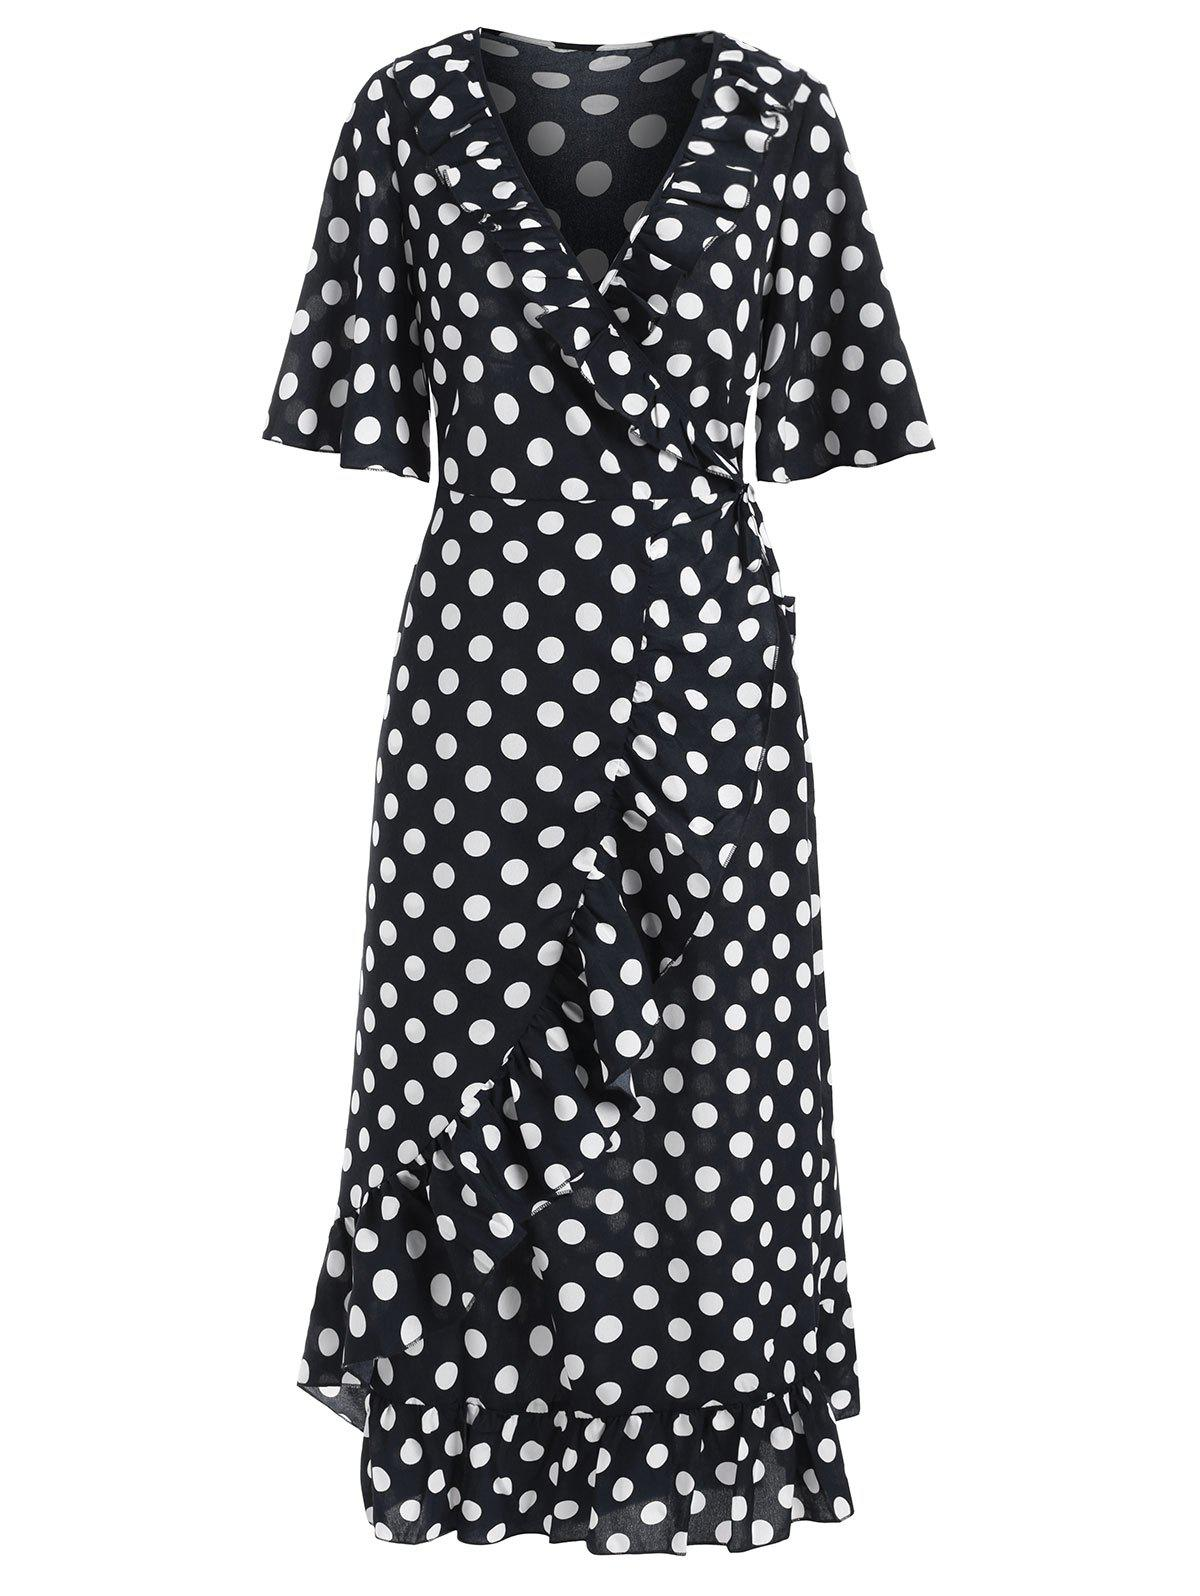 Ruffle Polka Dot Midi Wrap Dress - BLACK XL